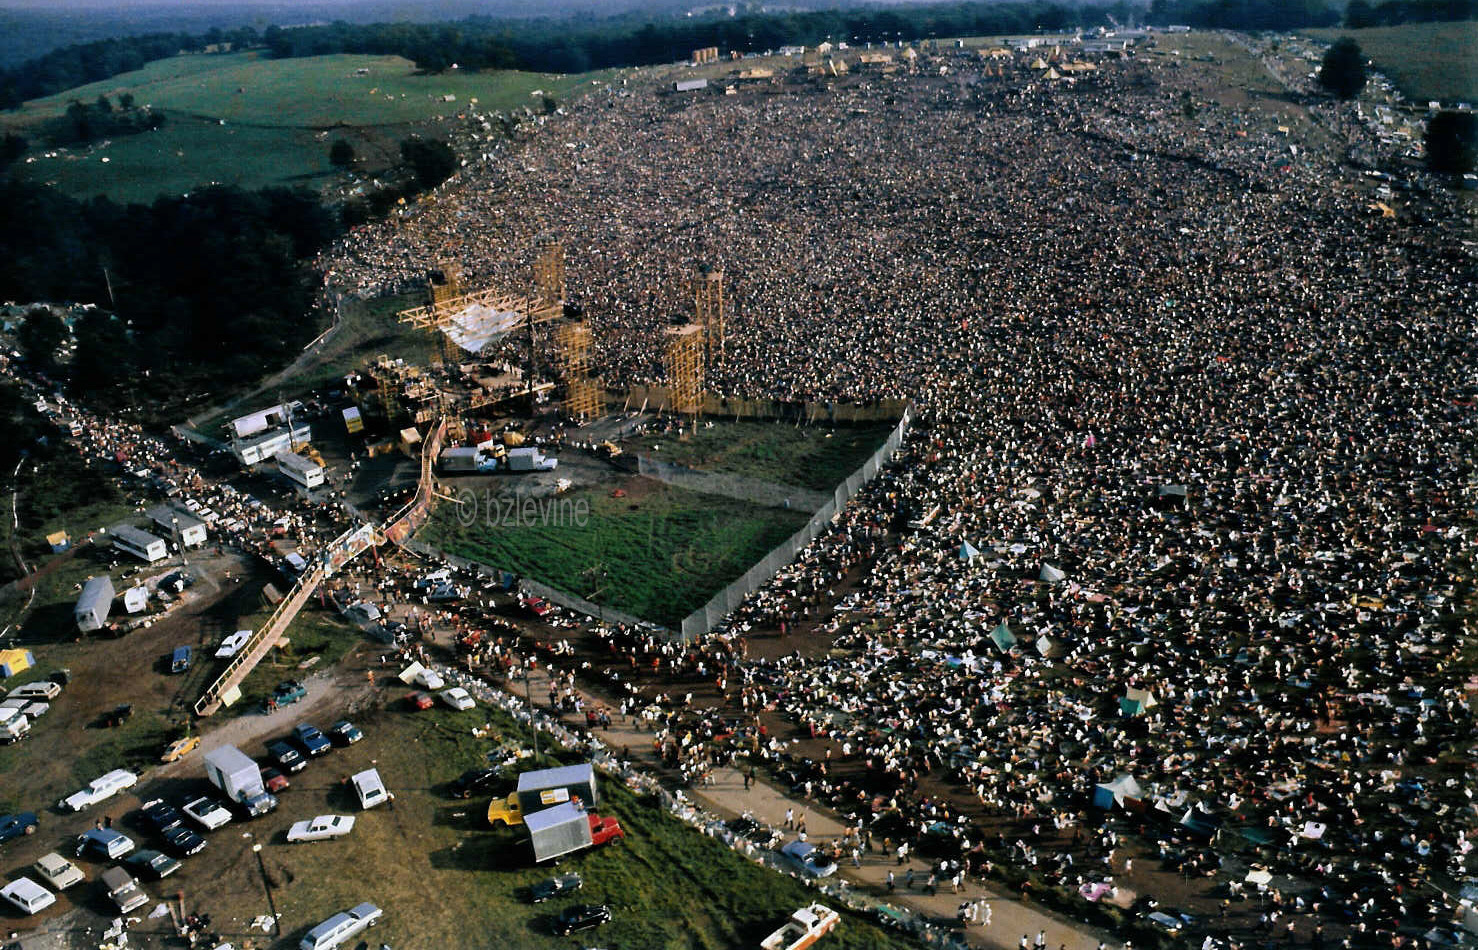 WoodStock Music Festival